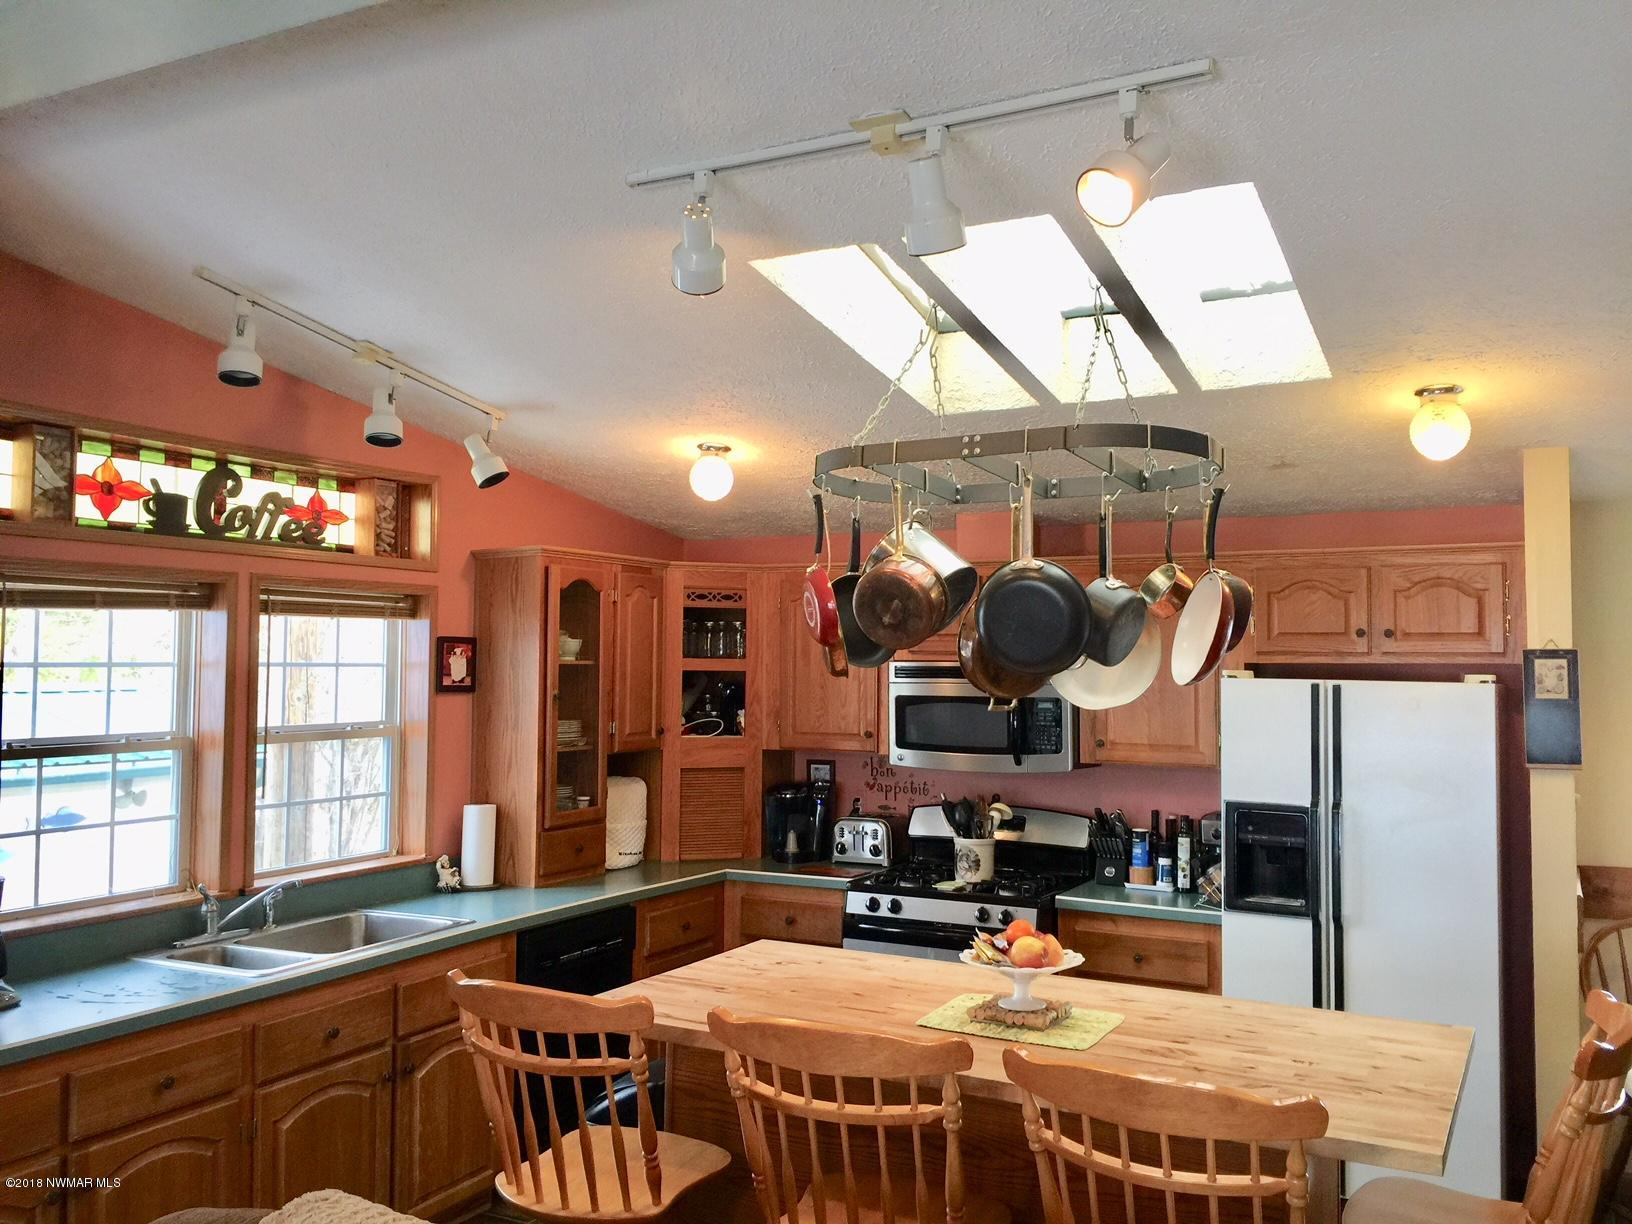 skylights in kitchen add lots of natural light!